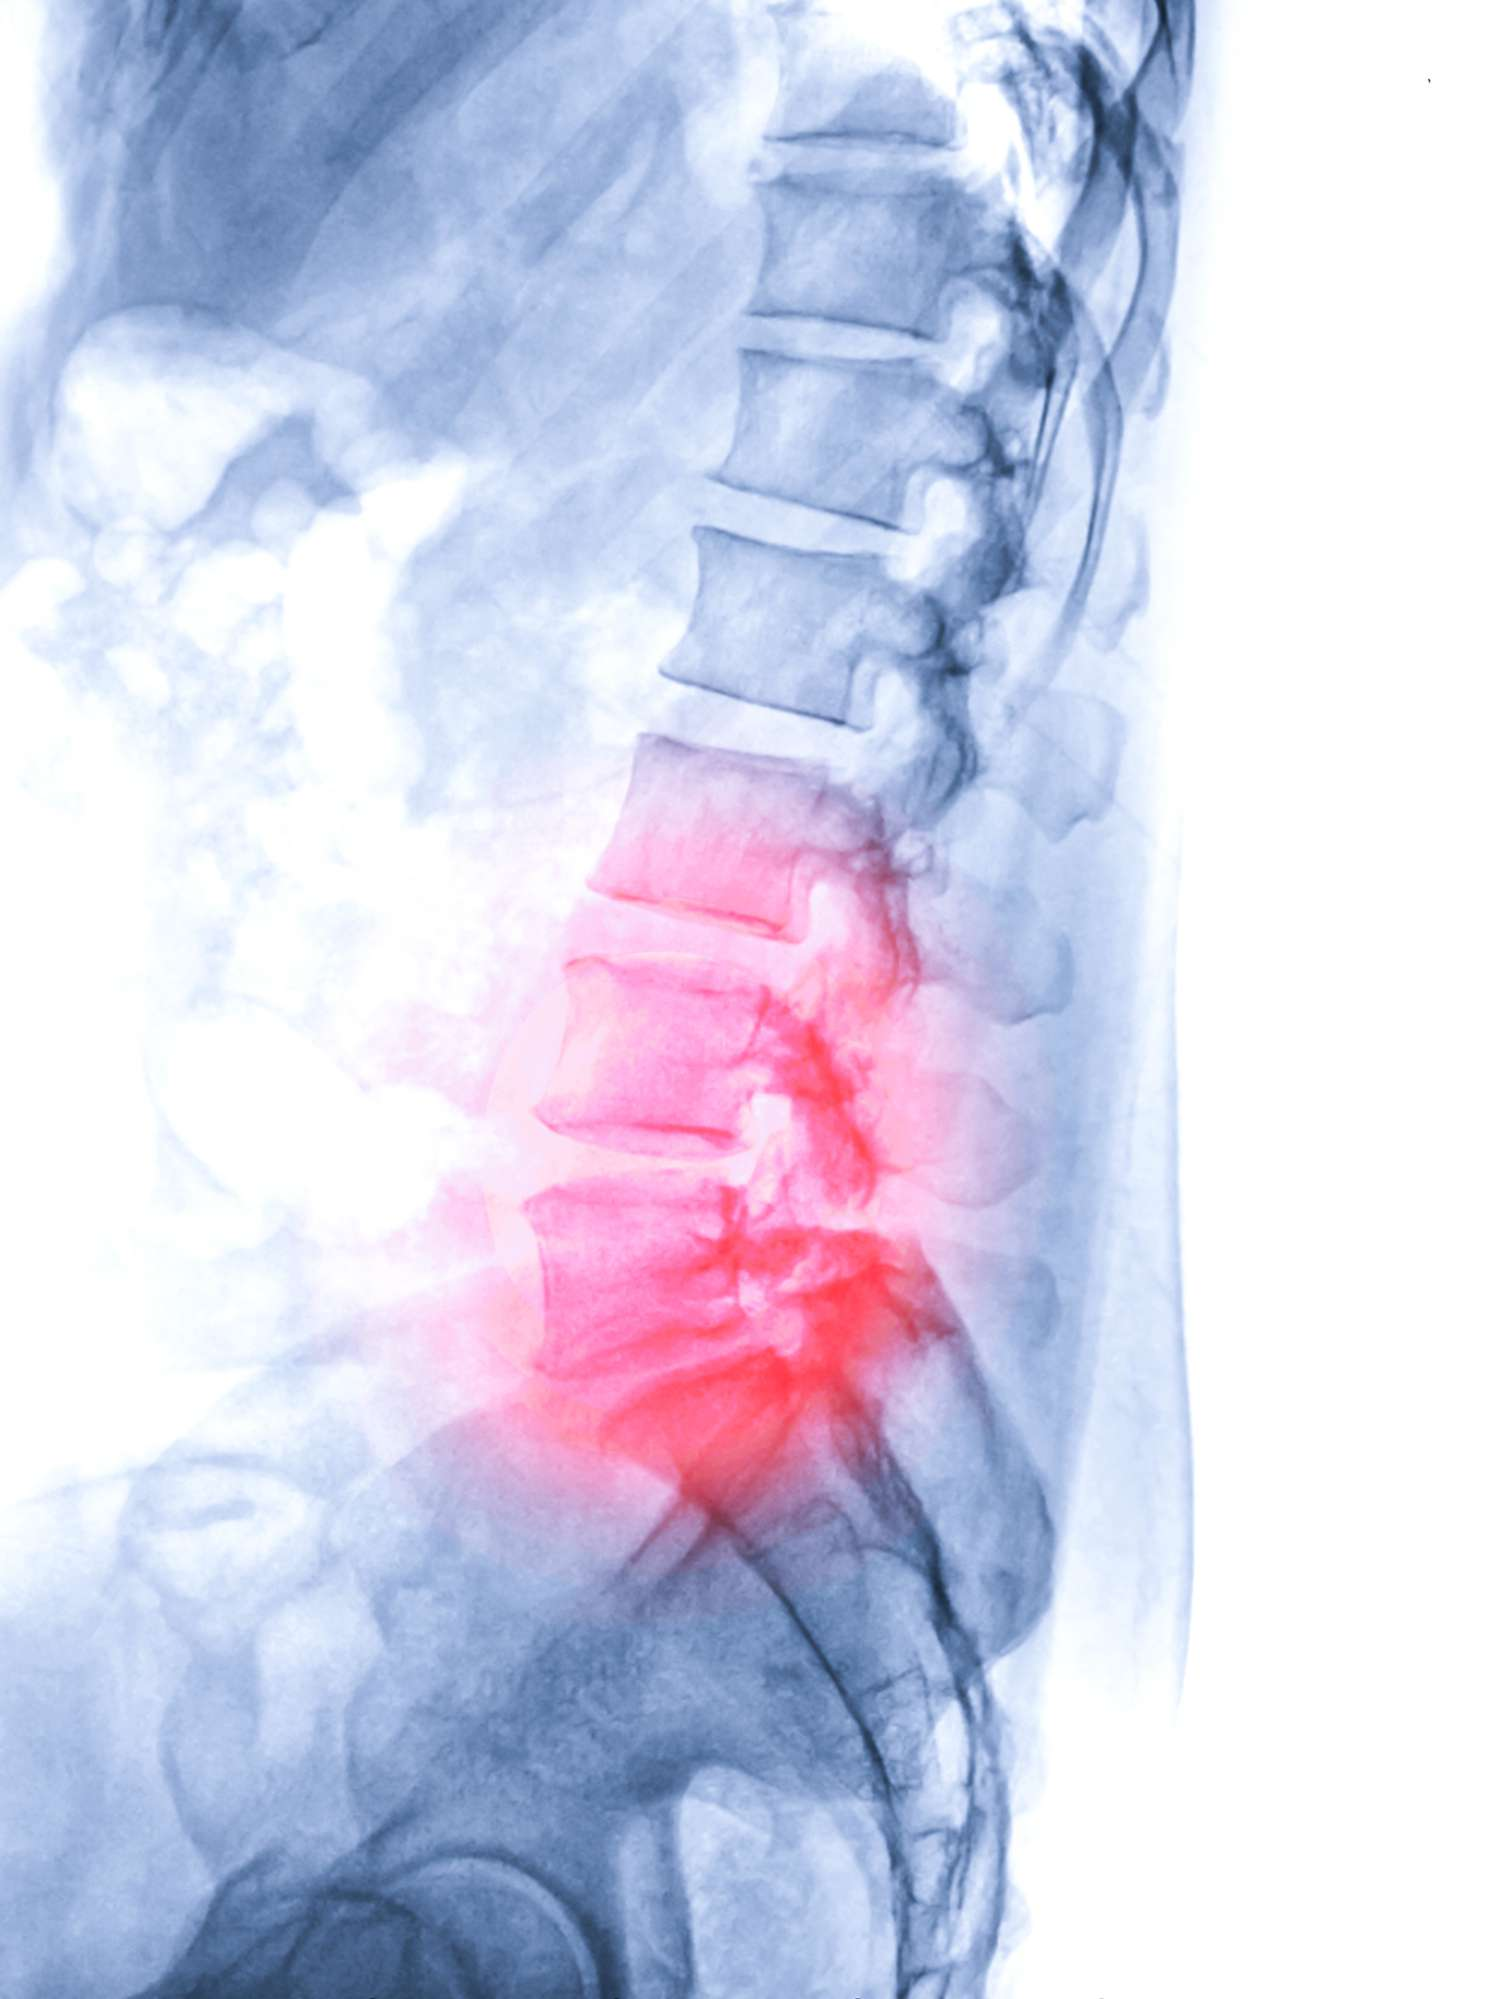 X-ray image of lambosacral spine or L-S spine lateral view from patient lower back